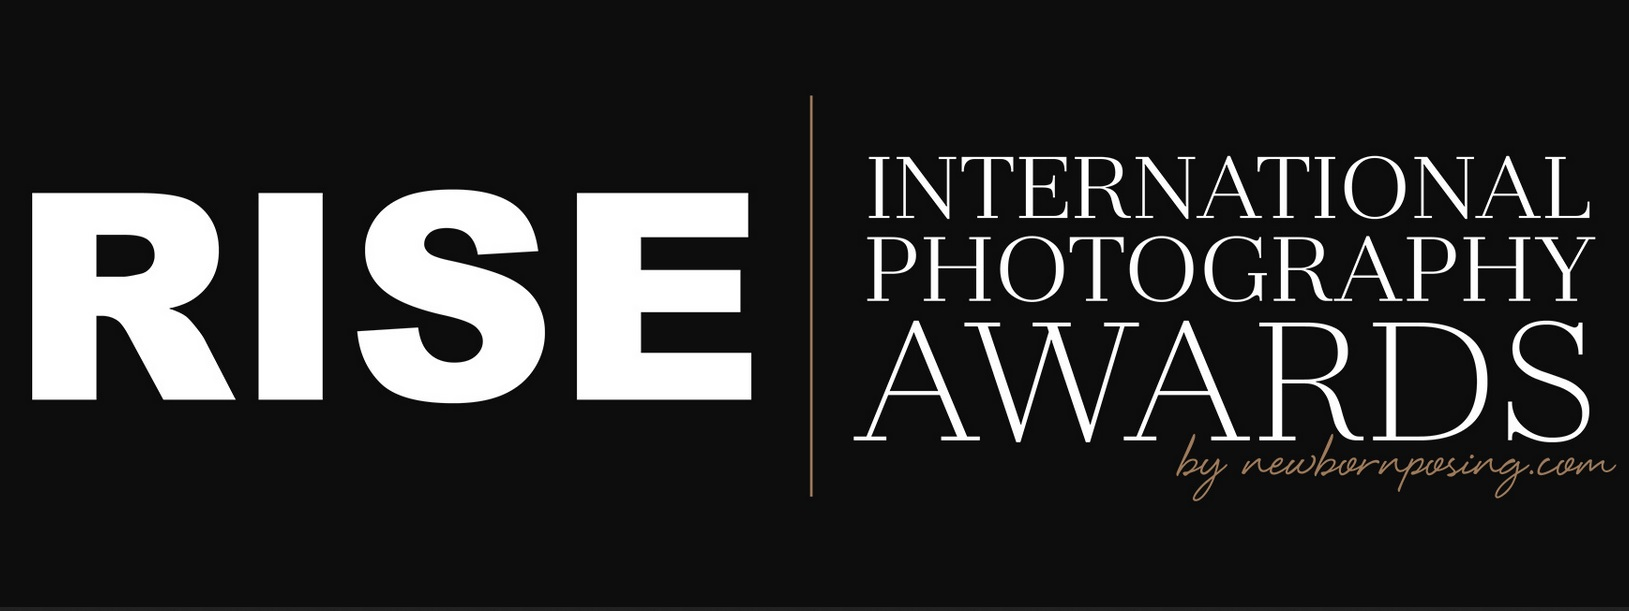 Rise International Photography Awards 2019 - logo